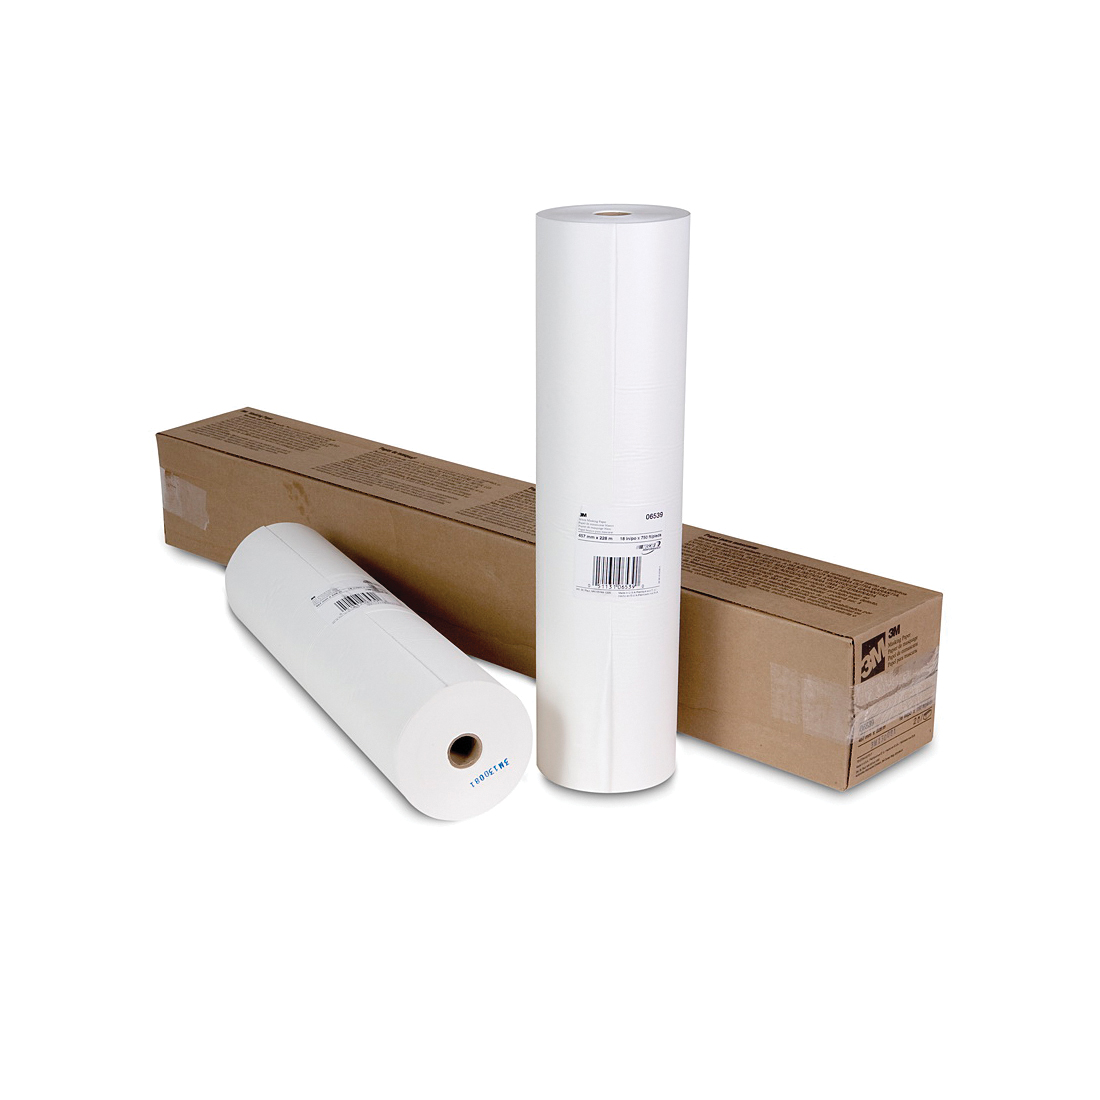 3M™ 051131-06539 Masking Paper, 18 in W x 750 ft Roll L, 1.5 mil THK, Paper, White